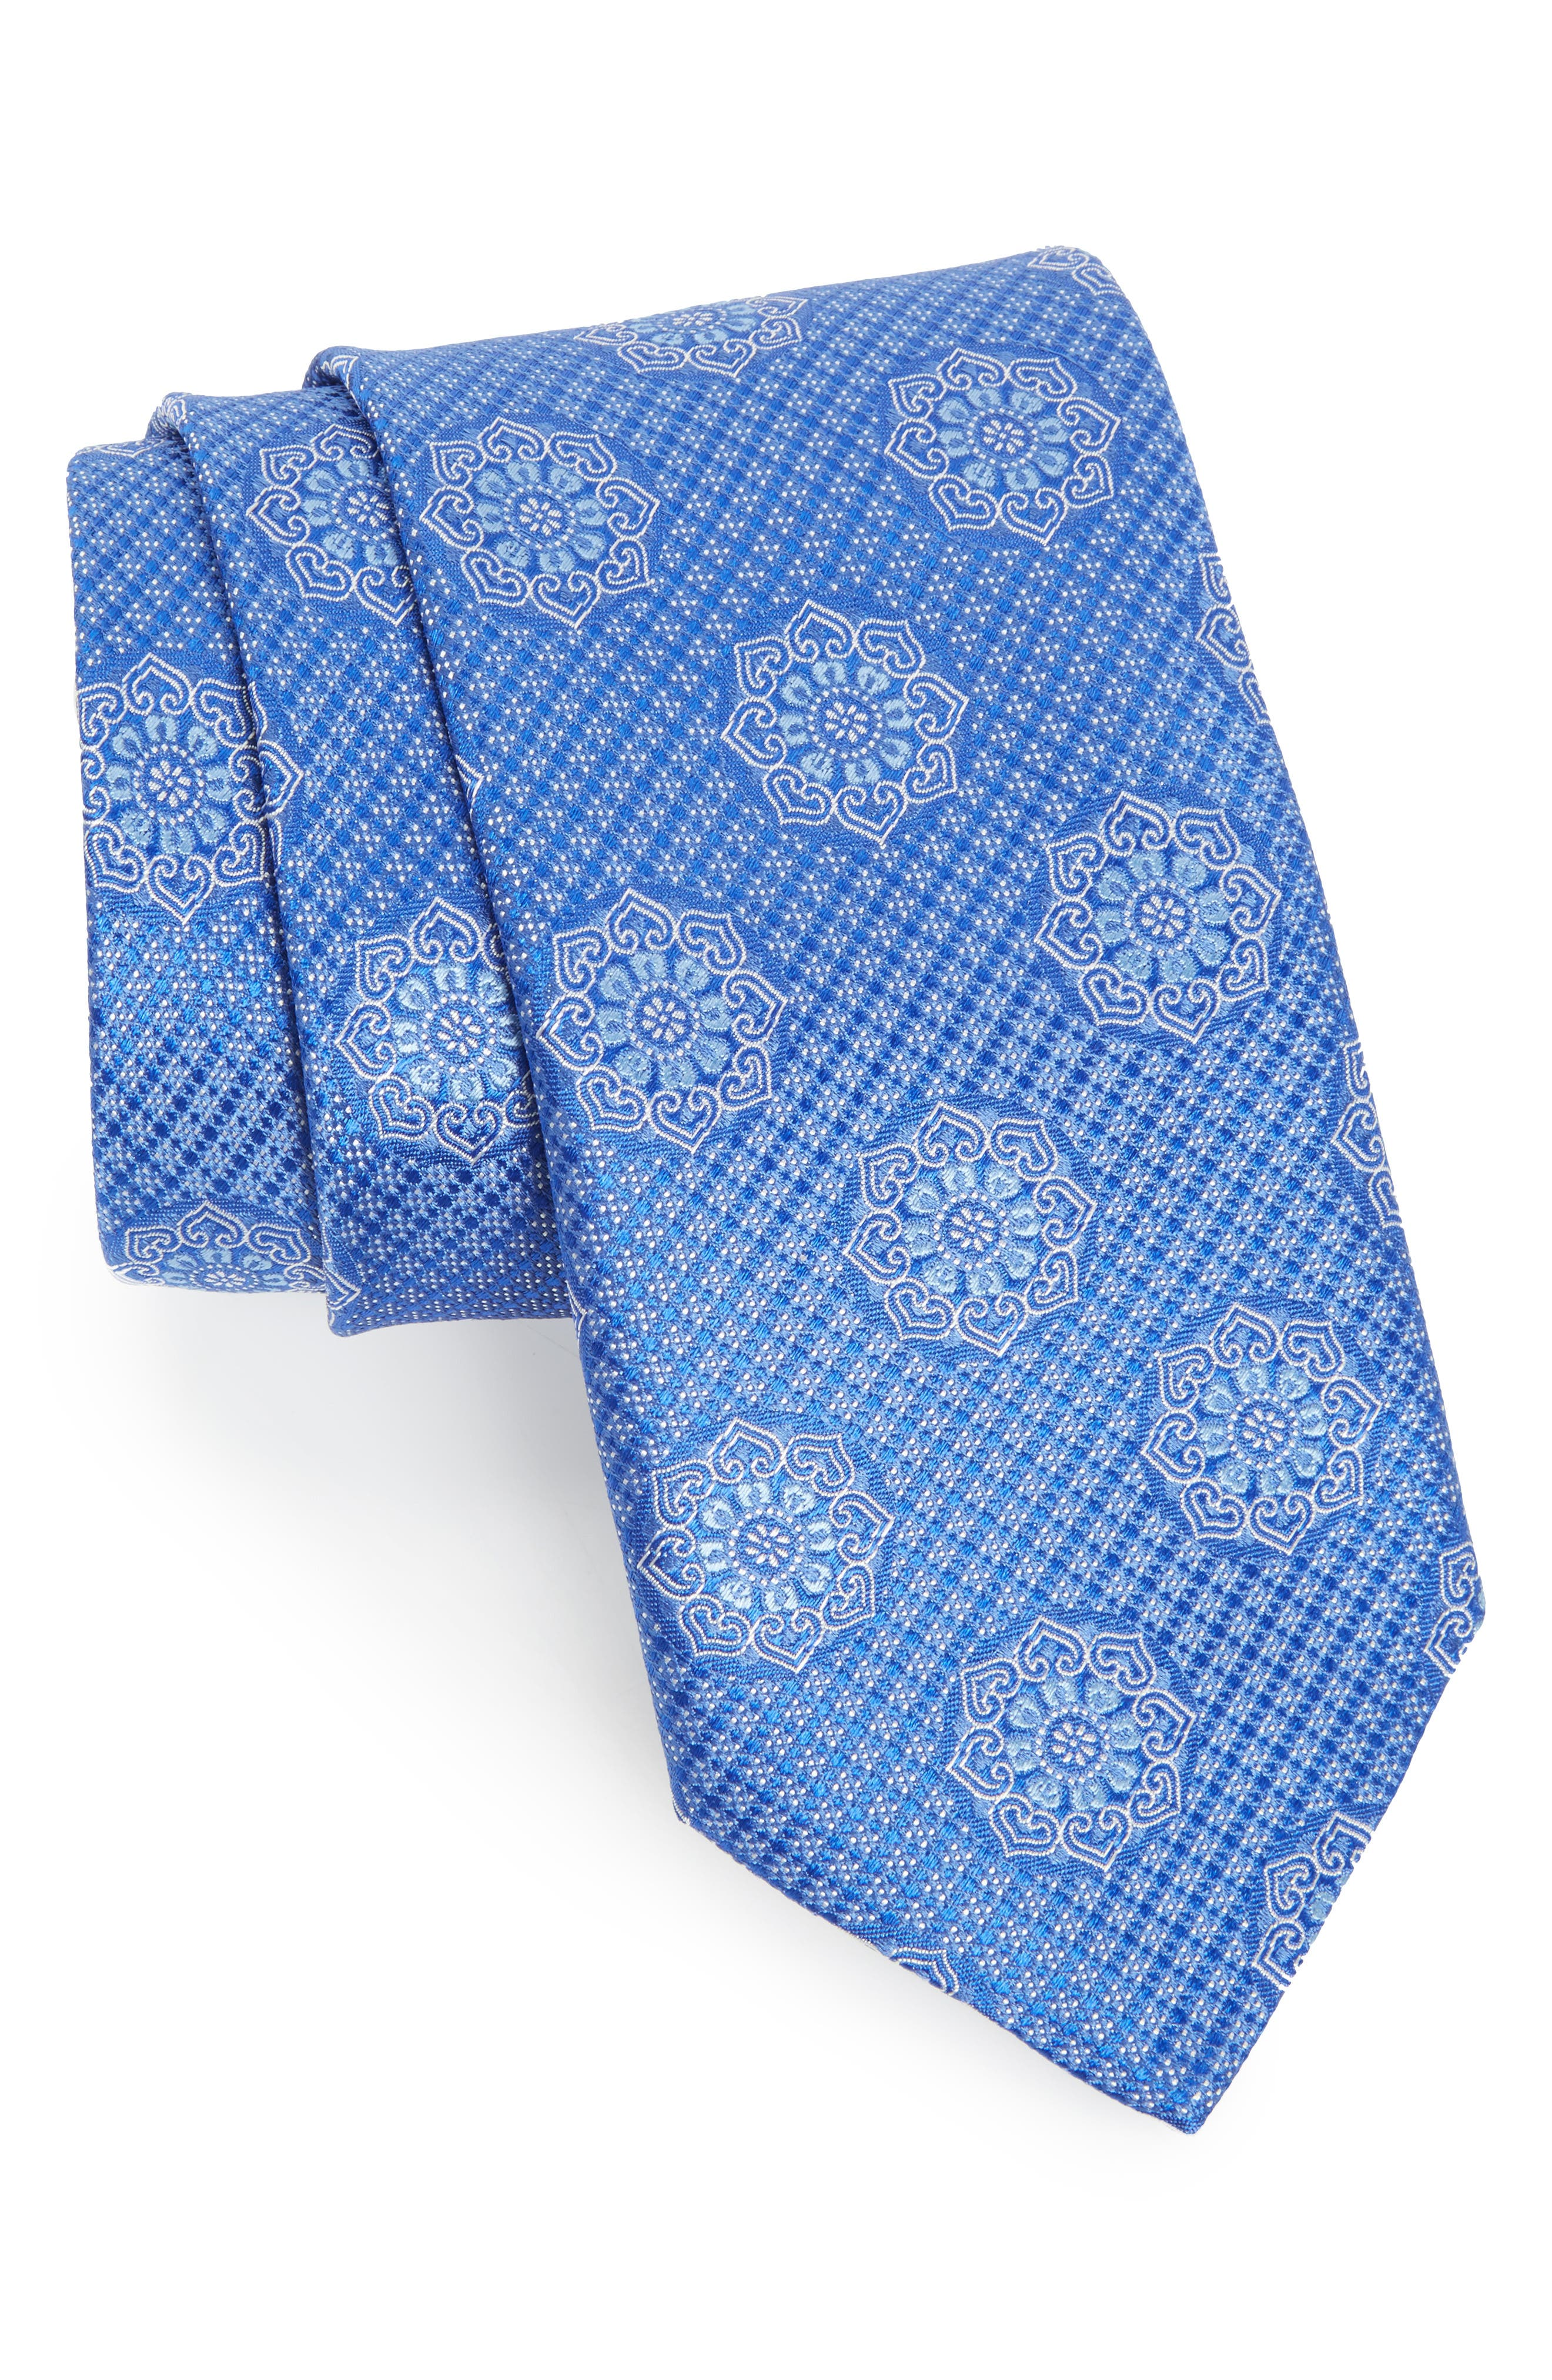 Medallion Silk Tie,                             Main thumbnail 1, color,                             400